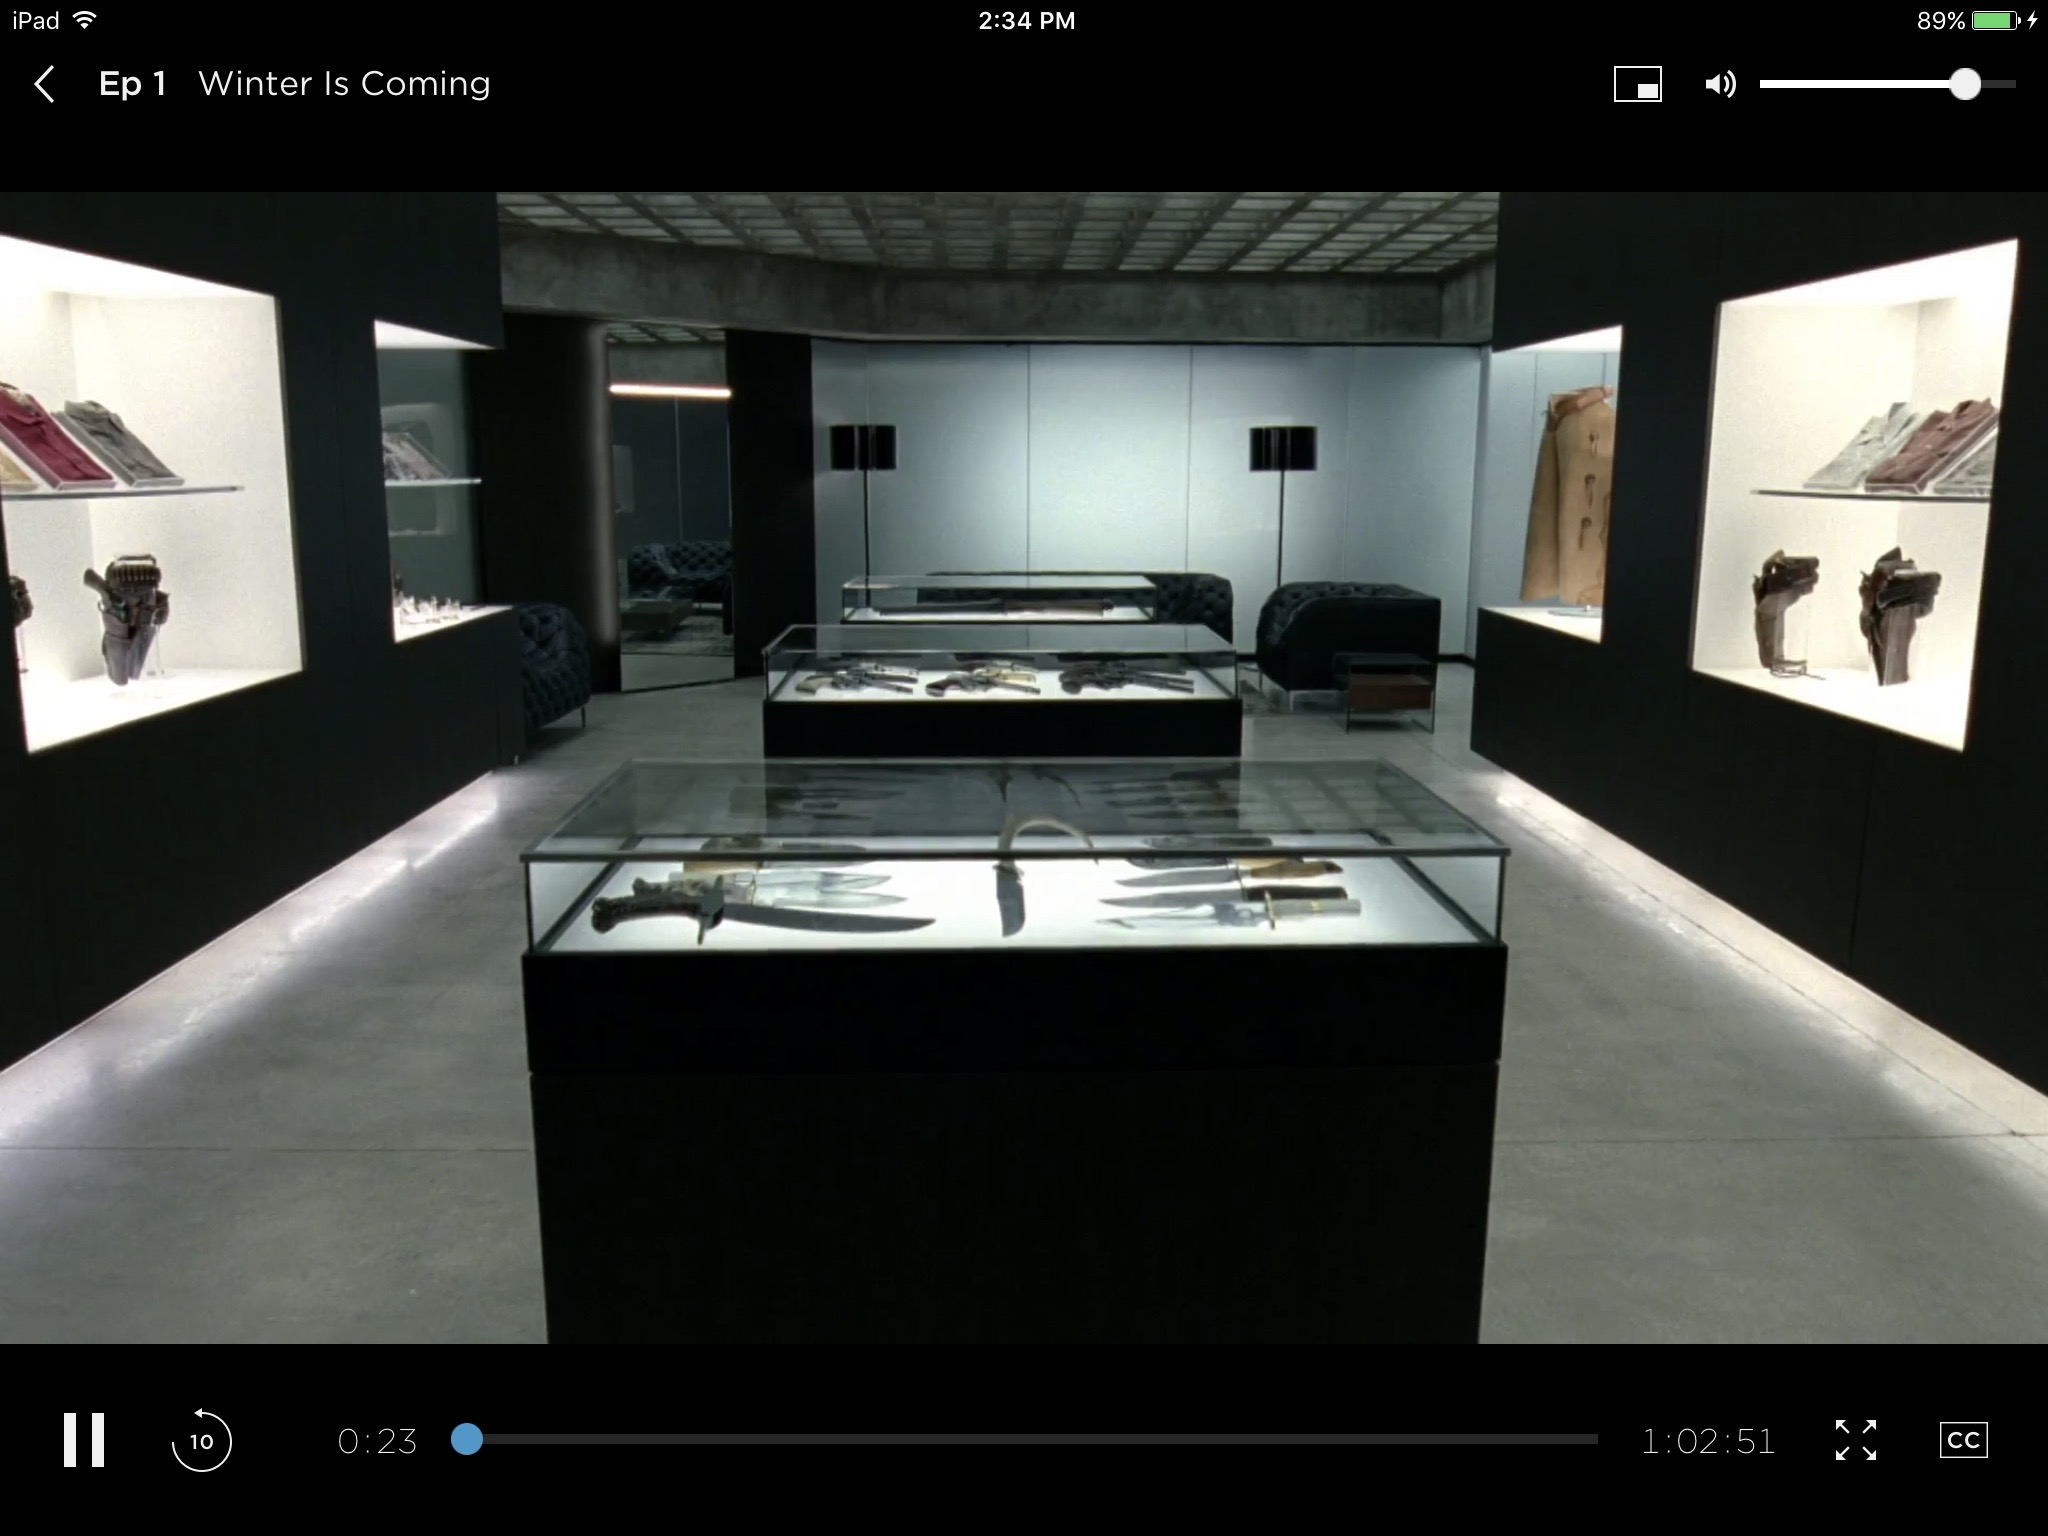 An advertisement on HBO GO showed in the same video display window, using the same scrubber bar as the main content.